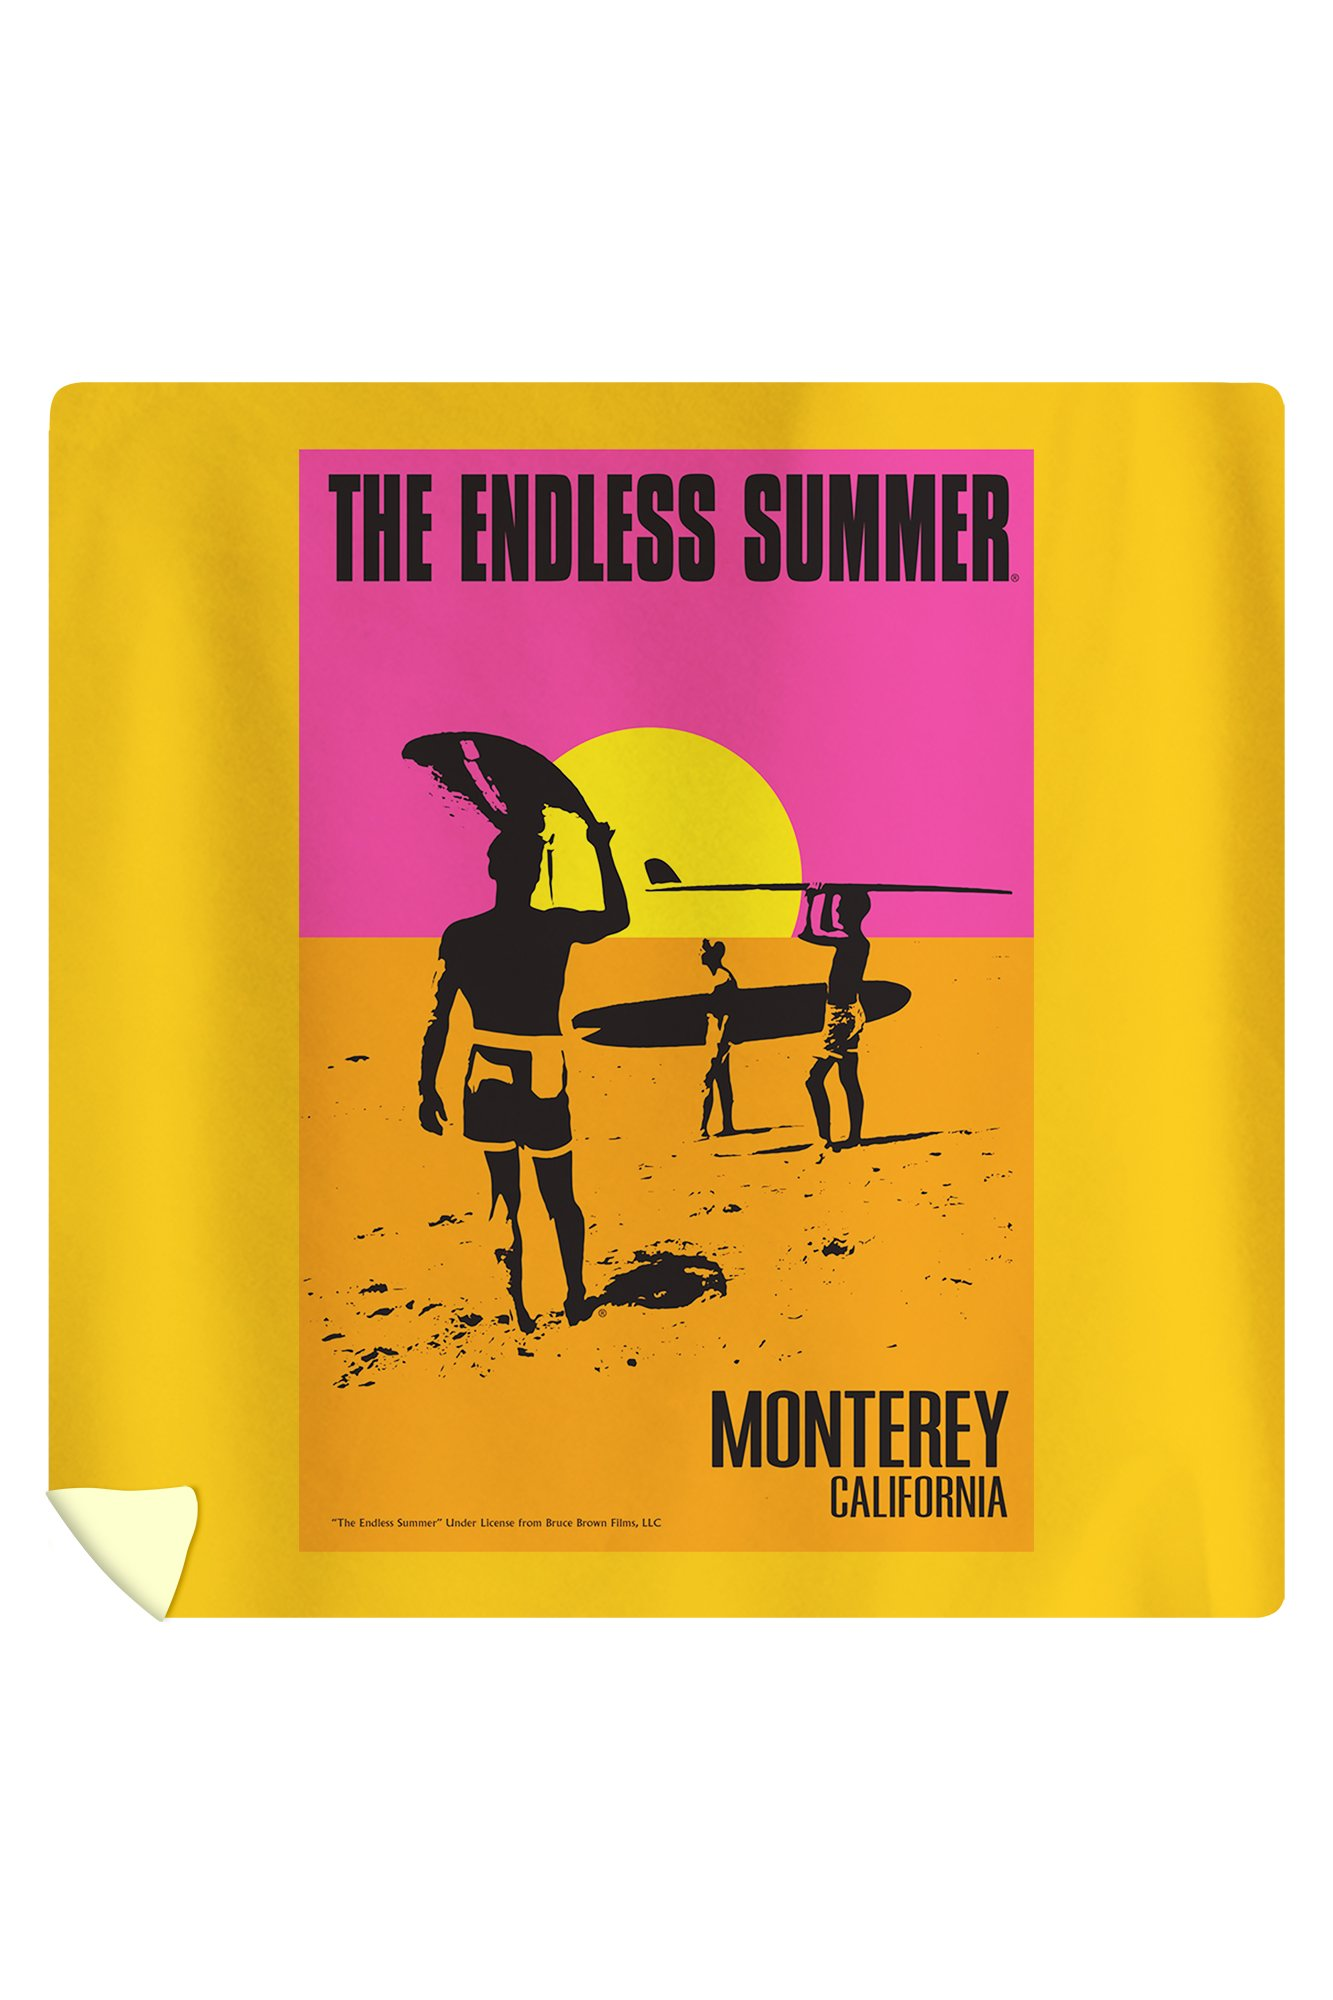 Monterey, California - The Endless Summer - Original Movie Poster (88x88 Queen Microfiber Duvet Cover)